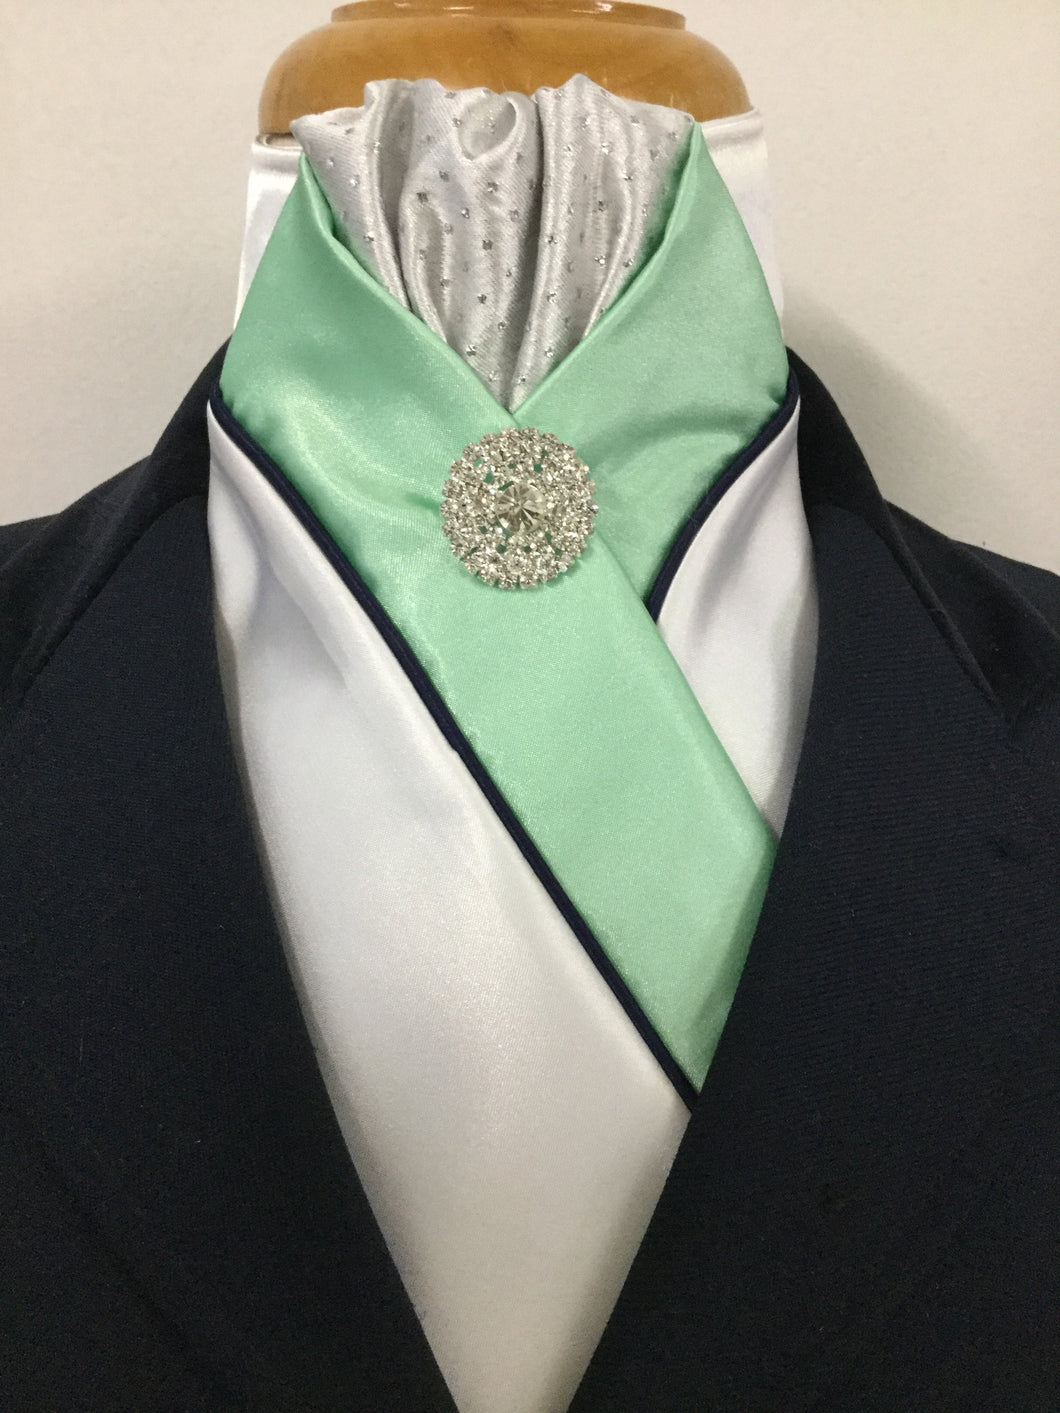 HHD 'The Royal' Pretied Stock Tie Silver Spot, Mint Green & Navy